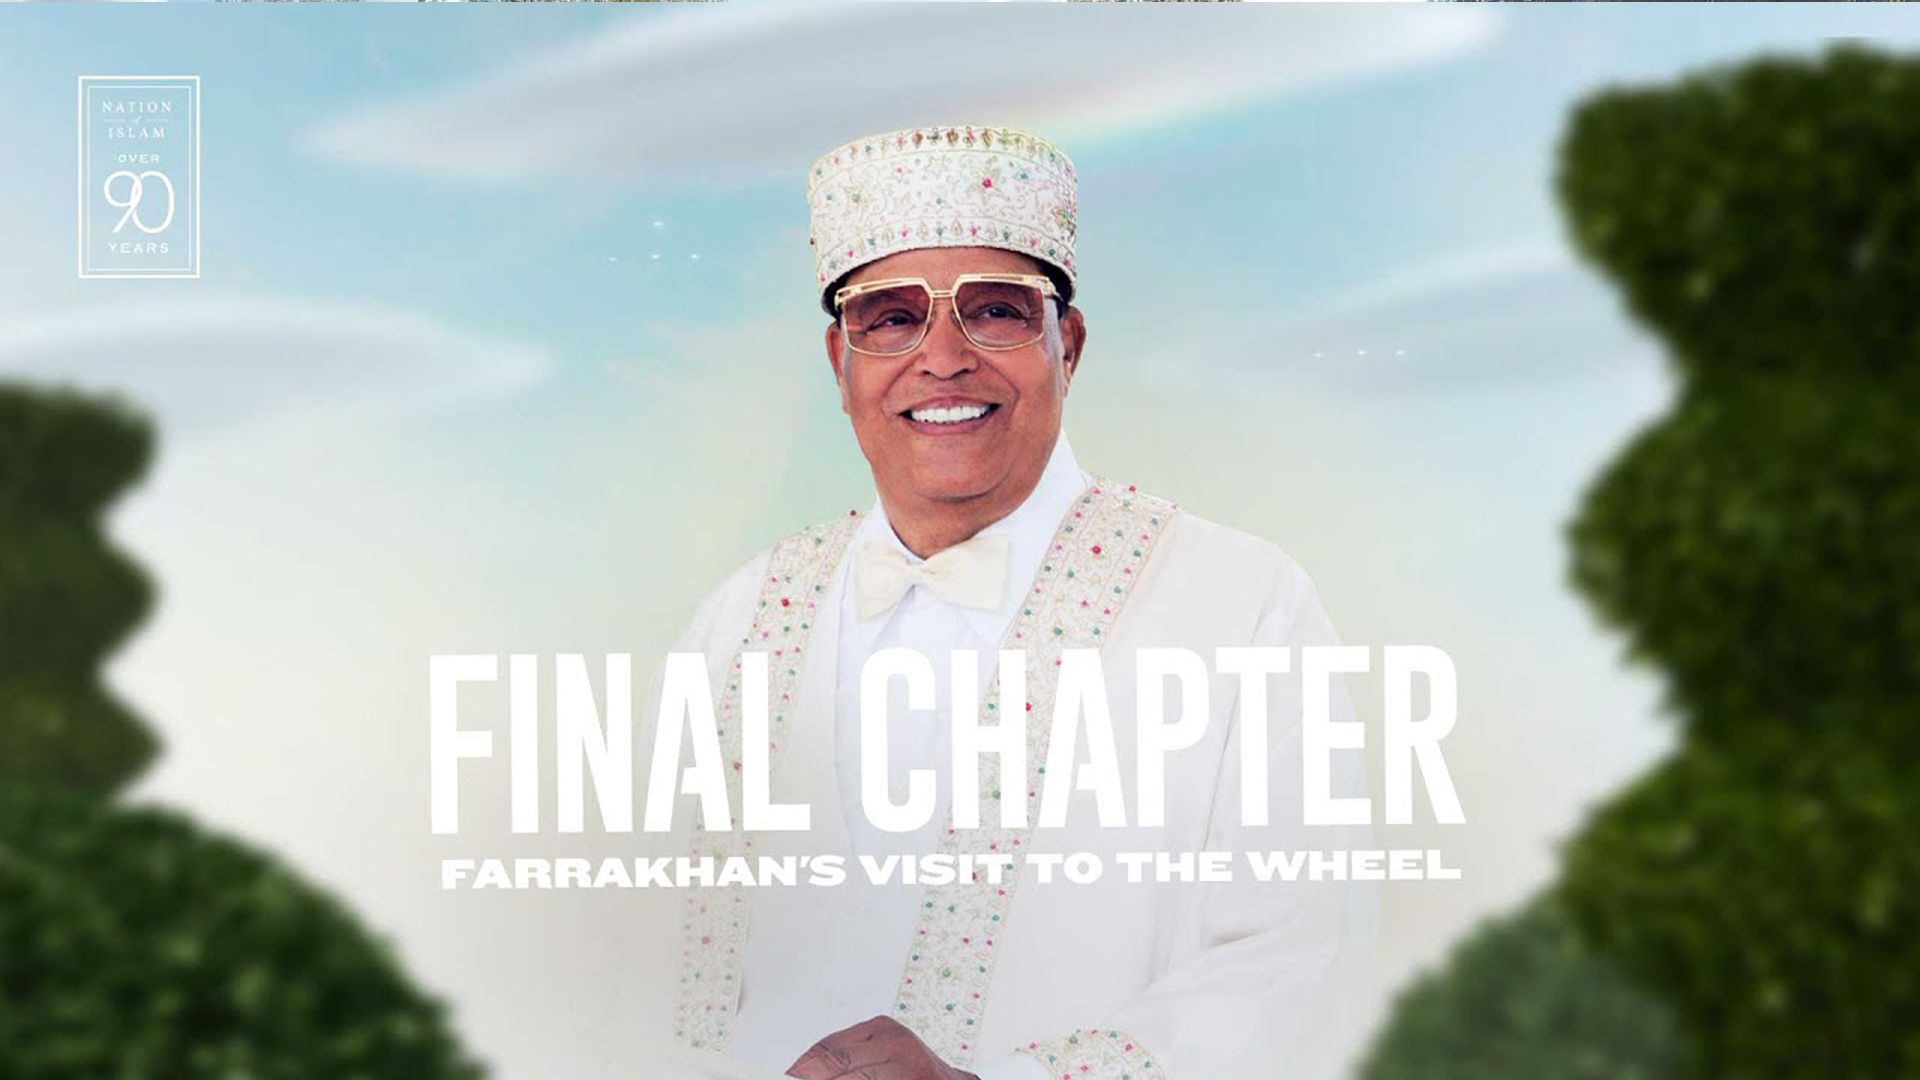 Final Chapter: Farrakhan's Visit To The Wheel